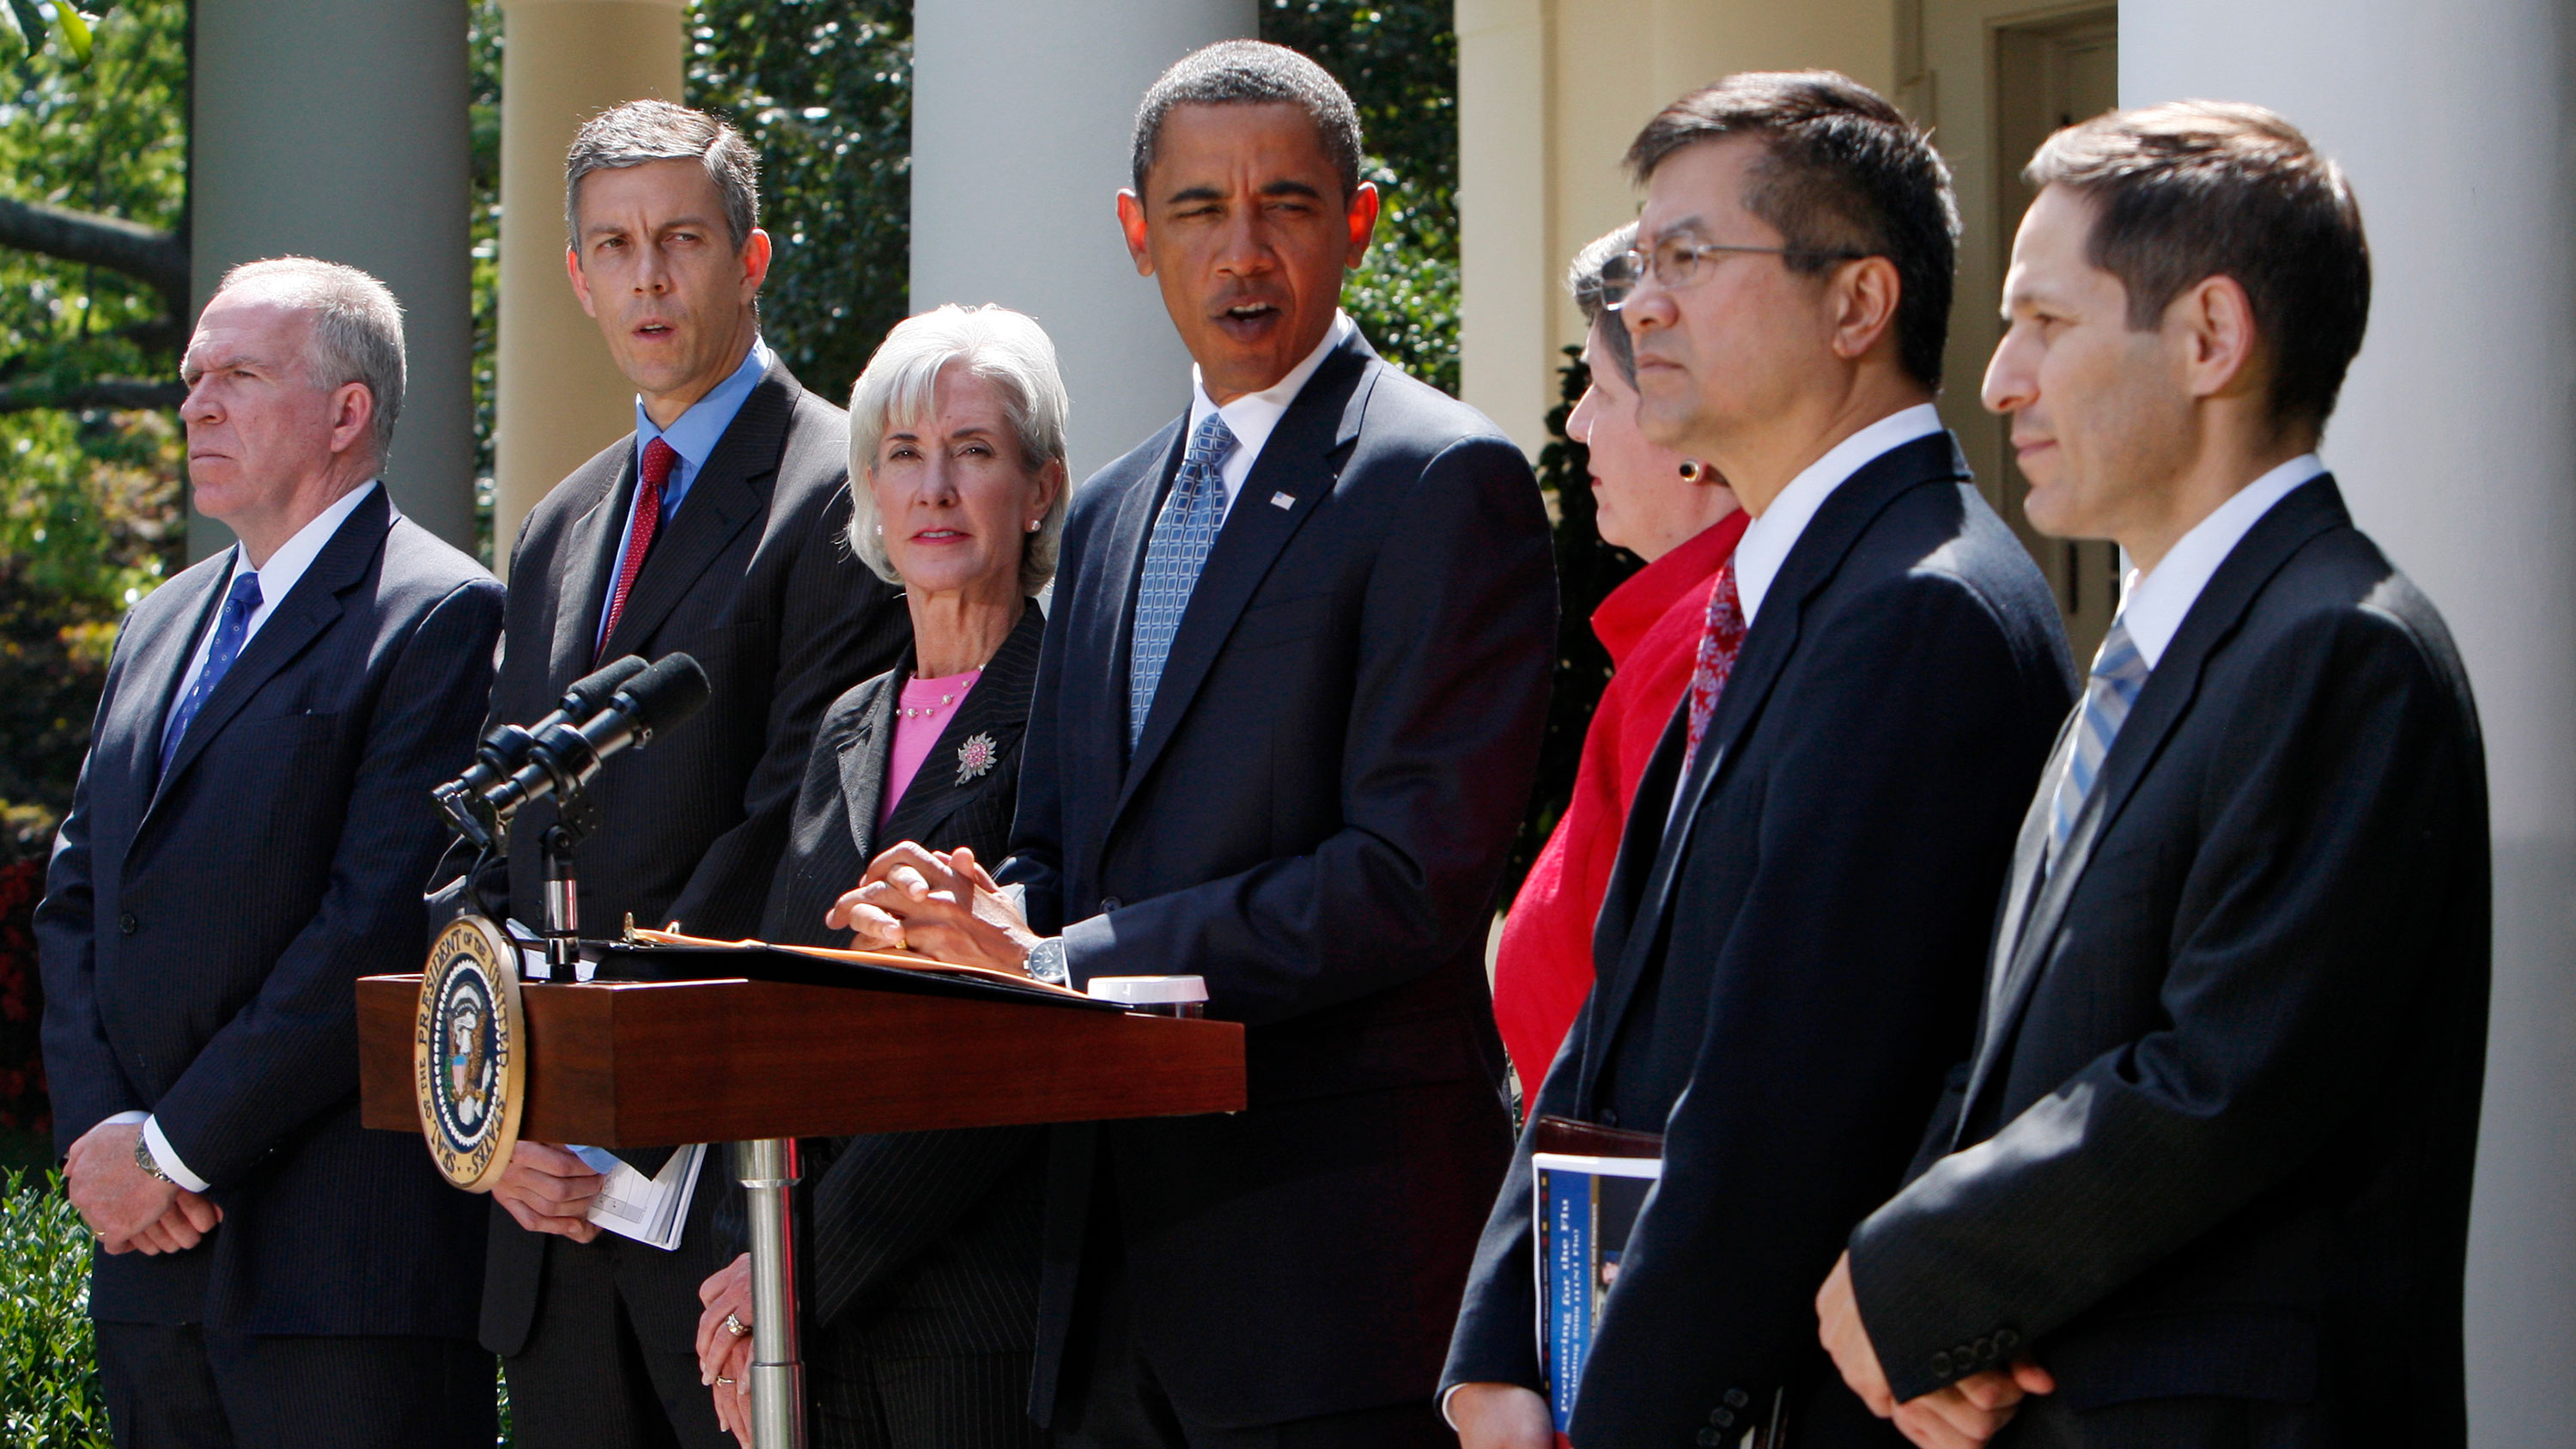 Obama is standing in front of microphones looking toward the camera surrounded by cabinet officials.